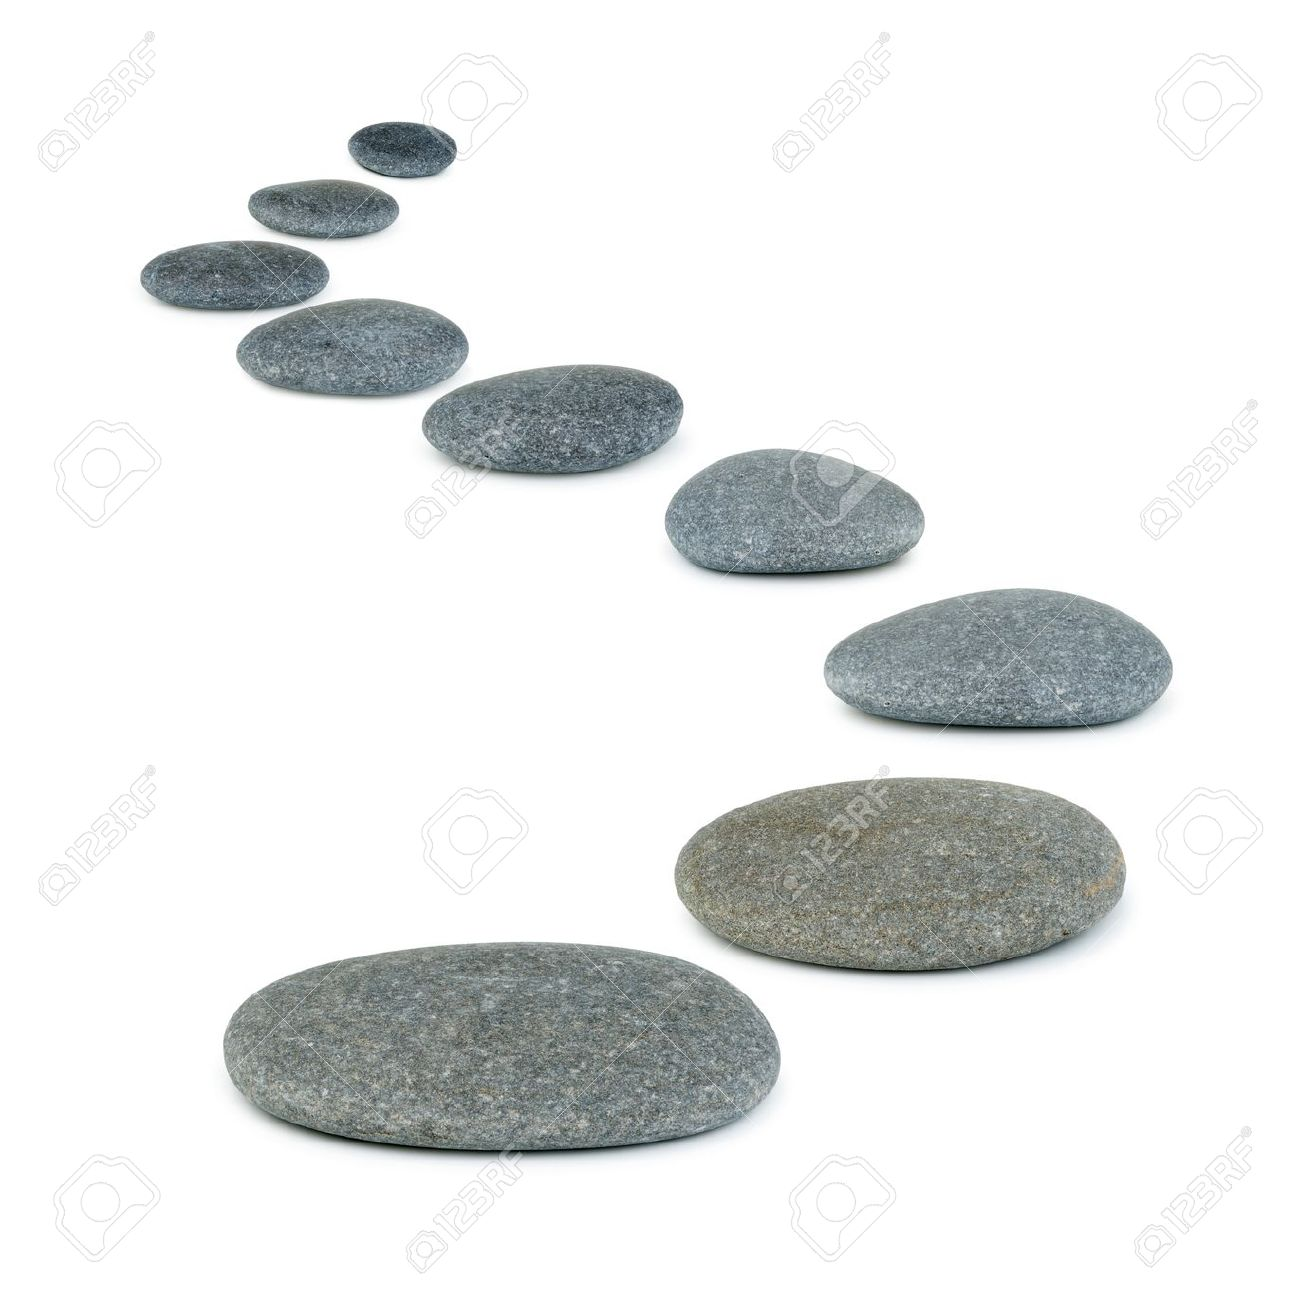 Pebble clipart stone Stone pathway clipart pathway clipart